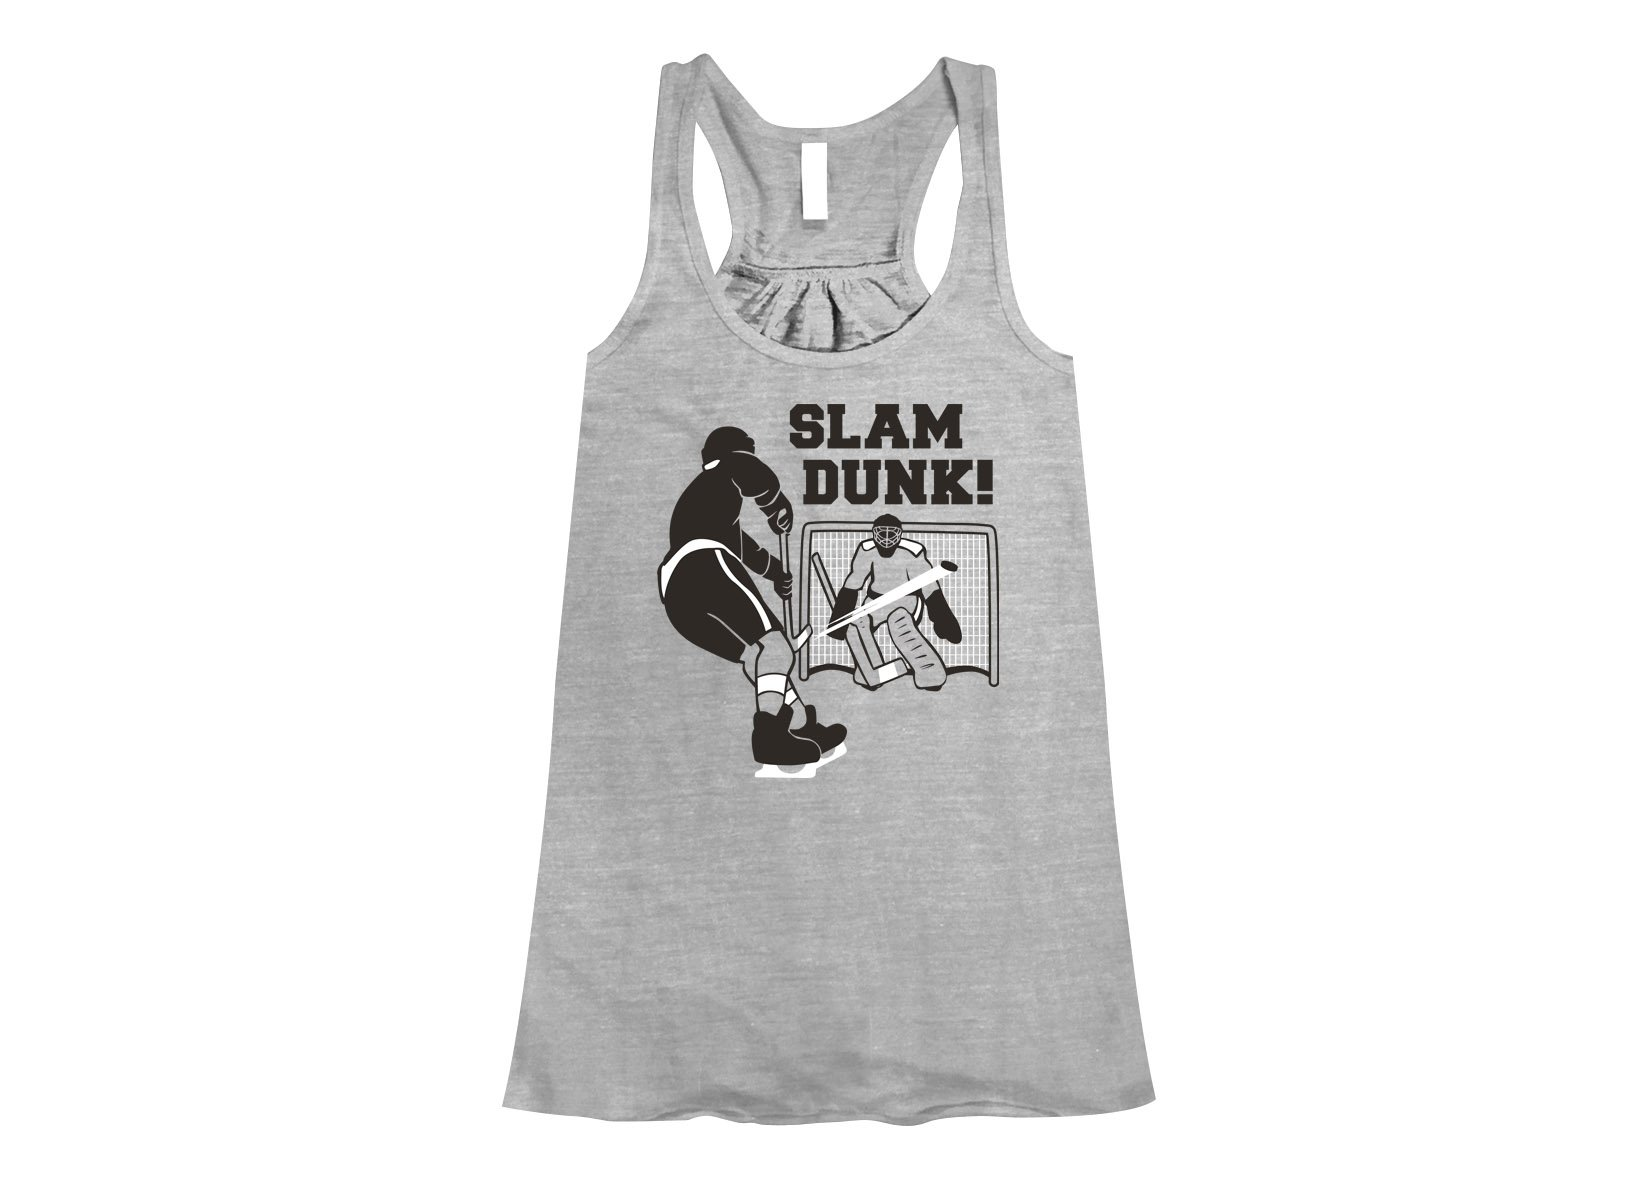 Slam Dunk! on Womens Tanks T-Shirt